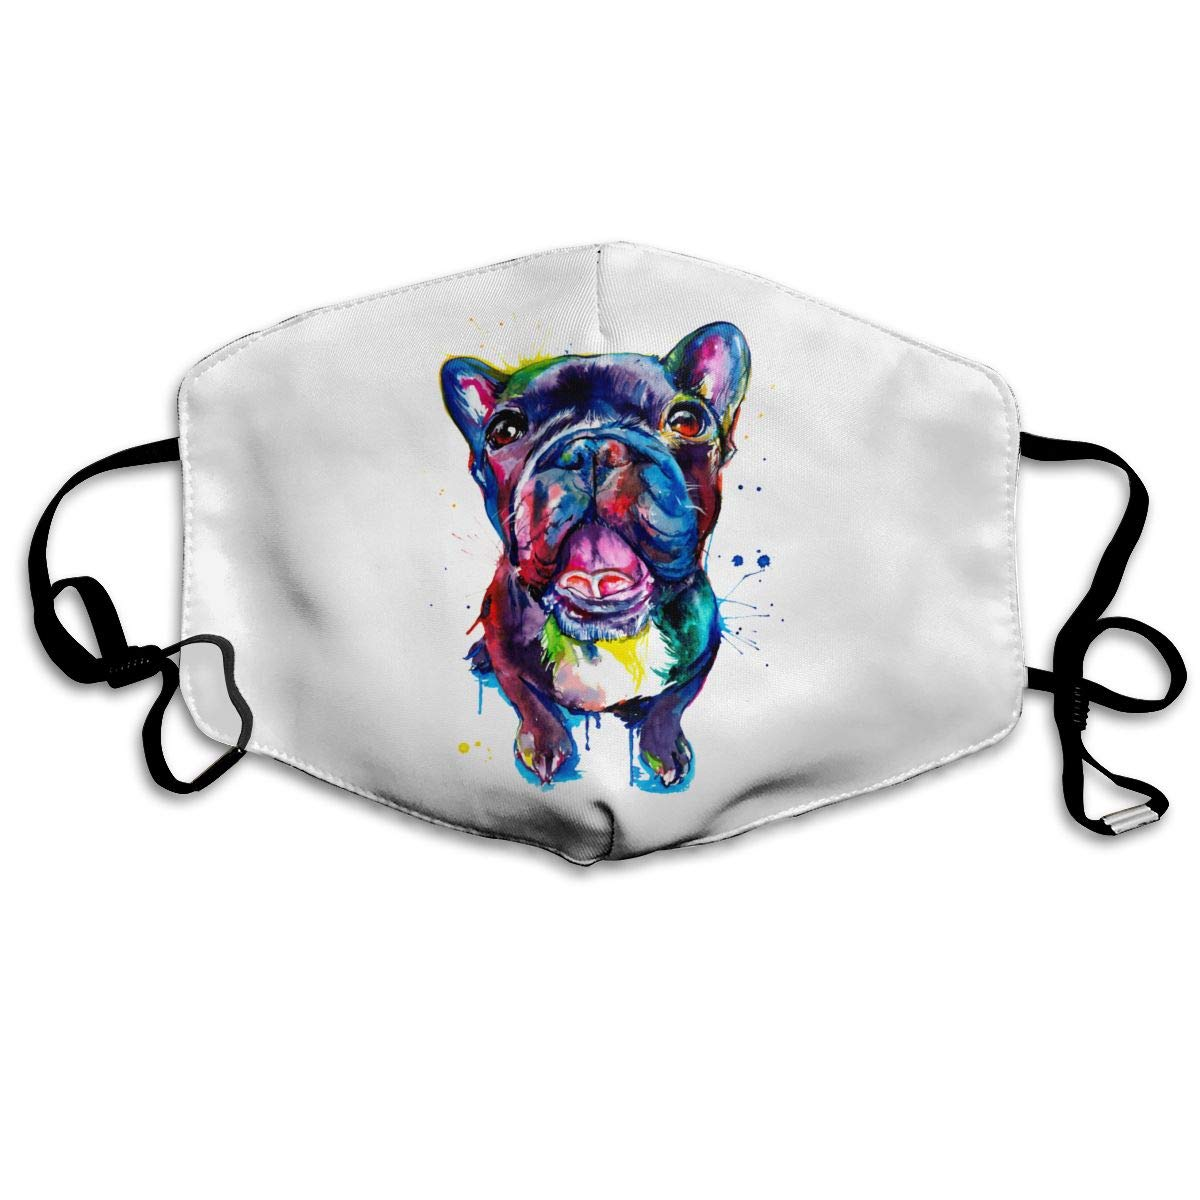 Mouth Mask Adjustable Anti Dust Face Mask, Black French Bulldog Frenchie Art Face Mask For Cycling Camping Travel